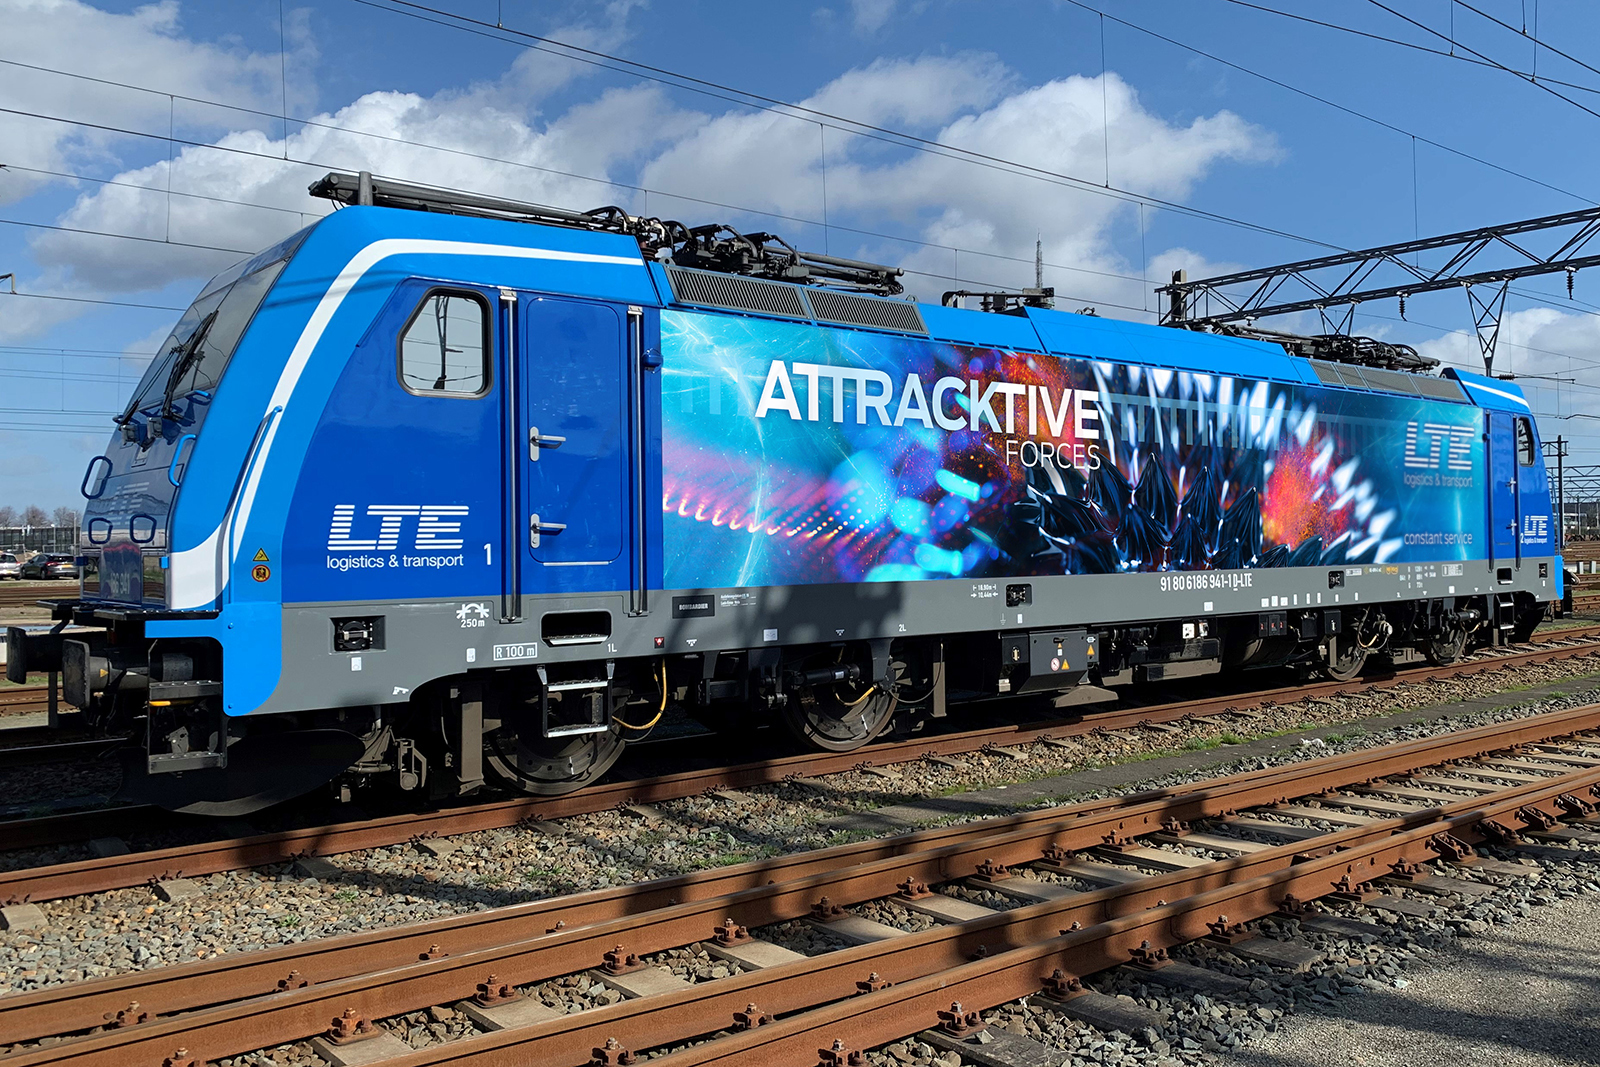 LTE Attracktive Forces